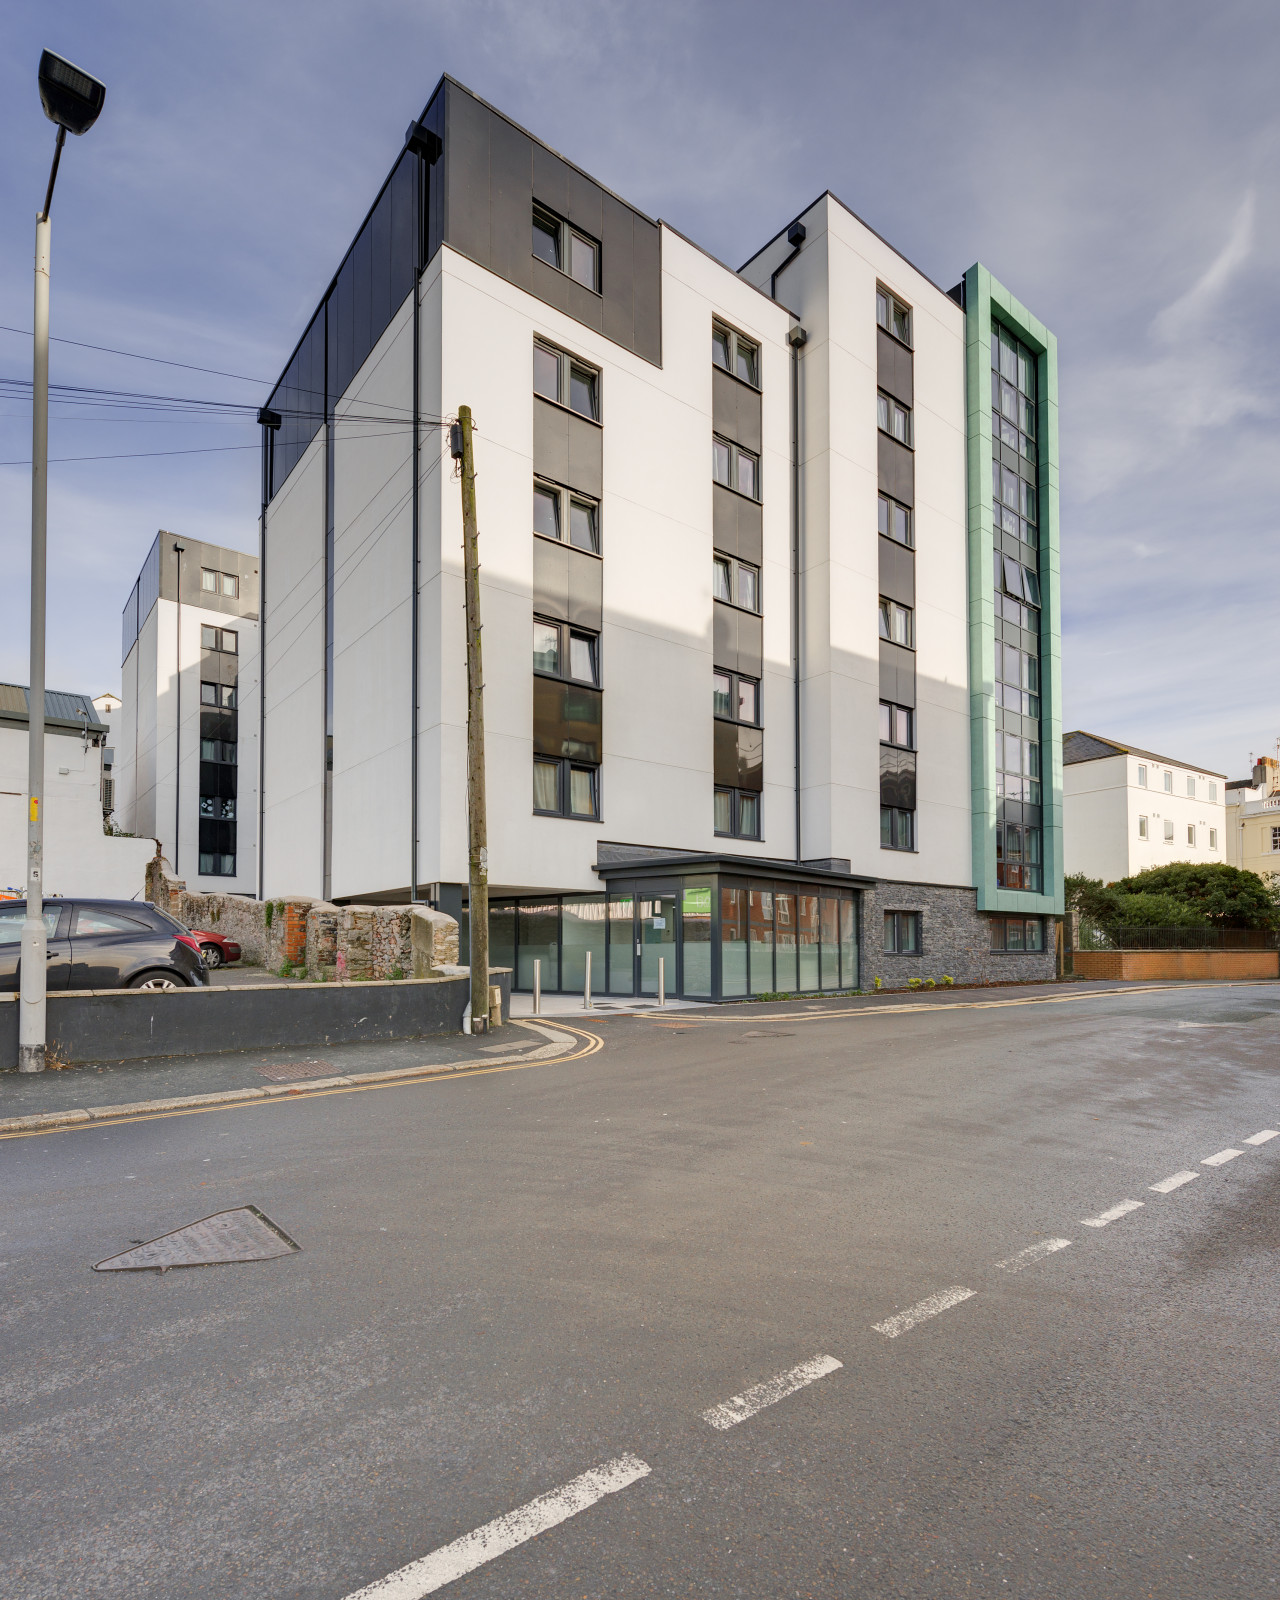 plymouth-the-old-dairy-student-accommodation-exterior-building